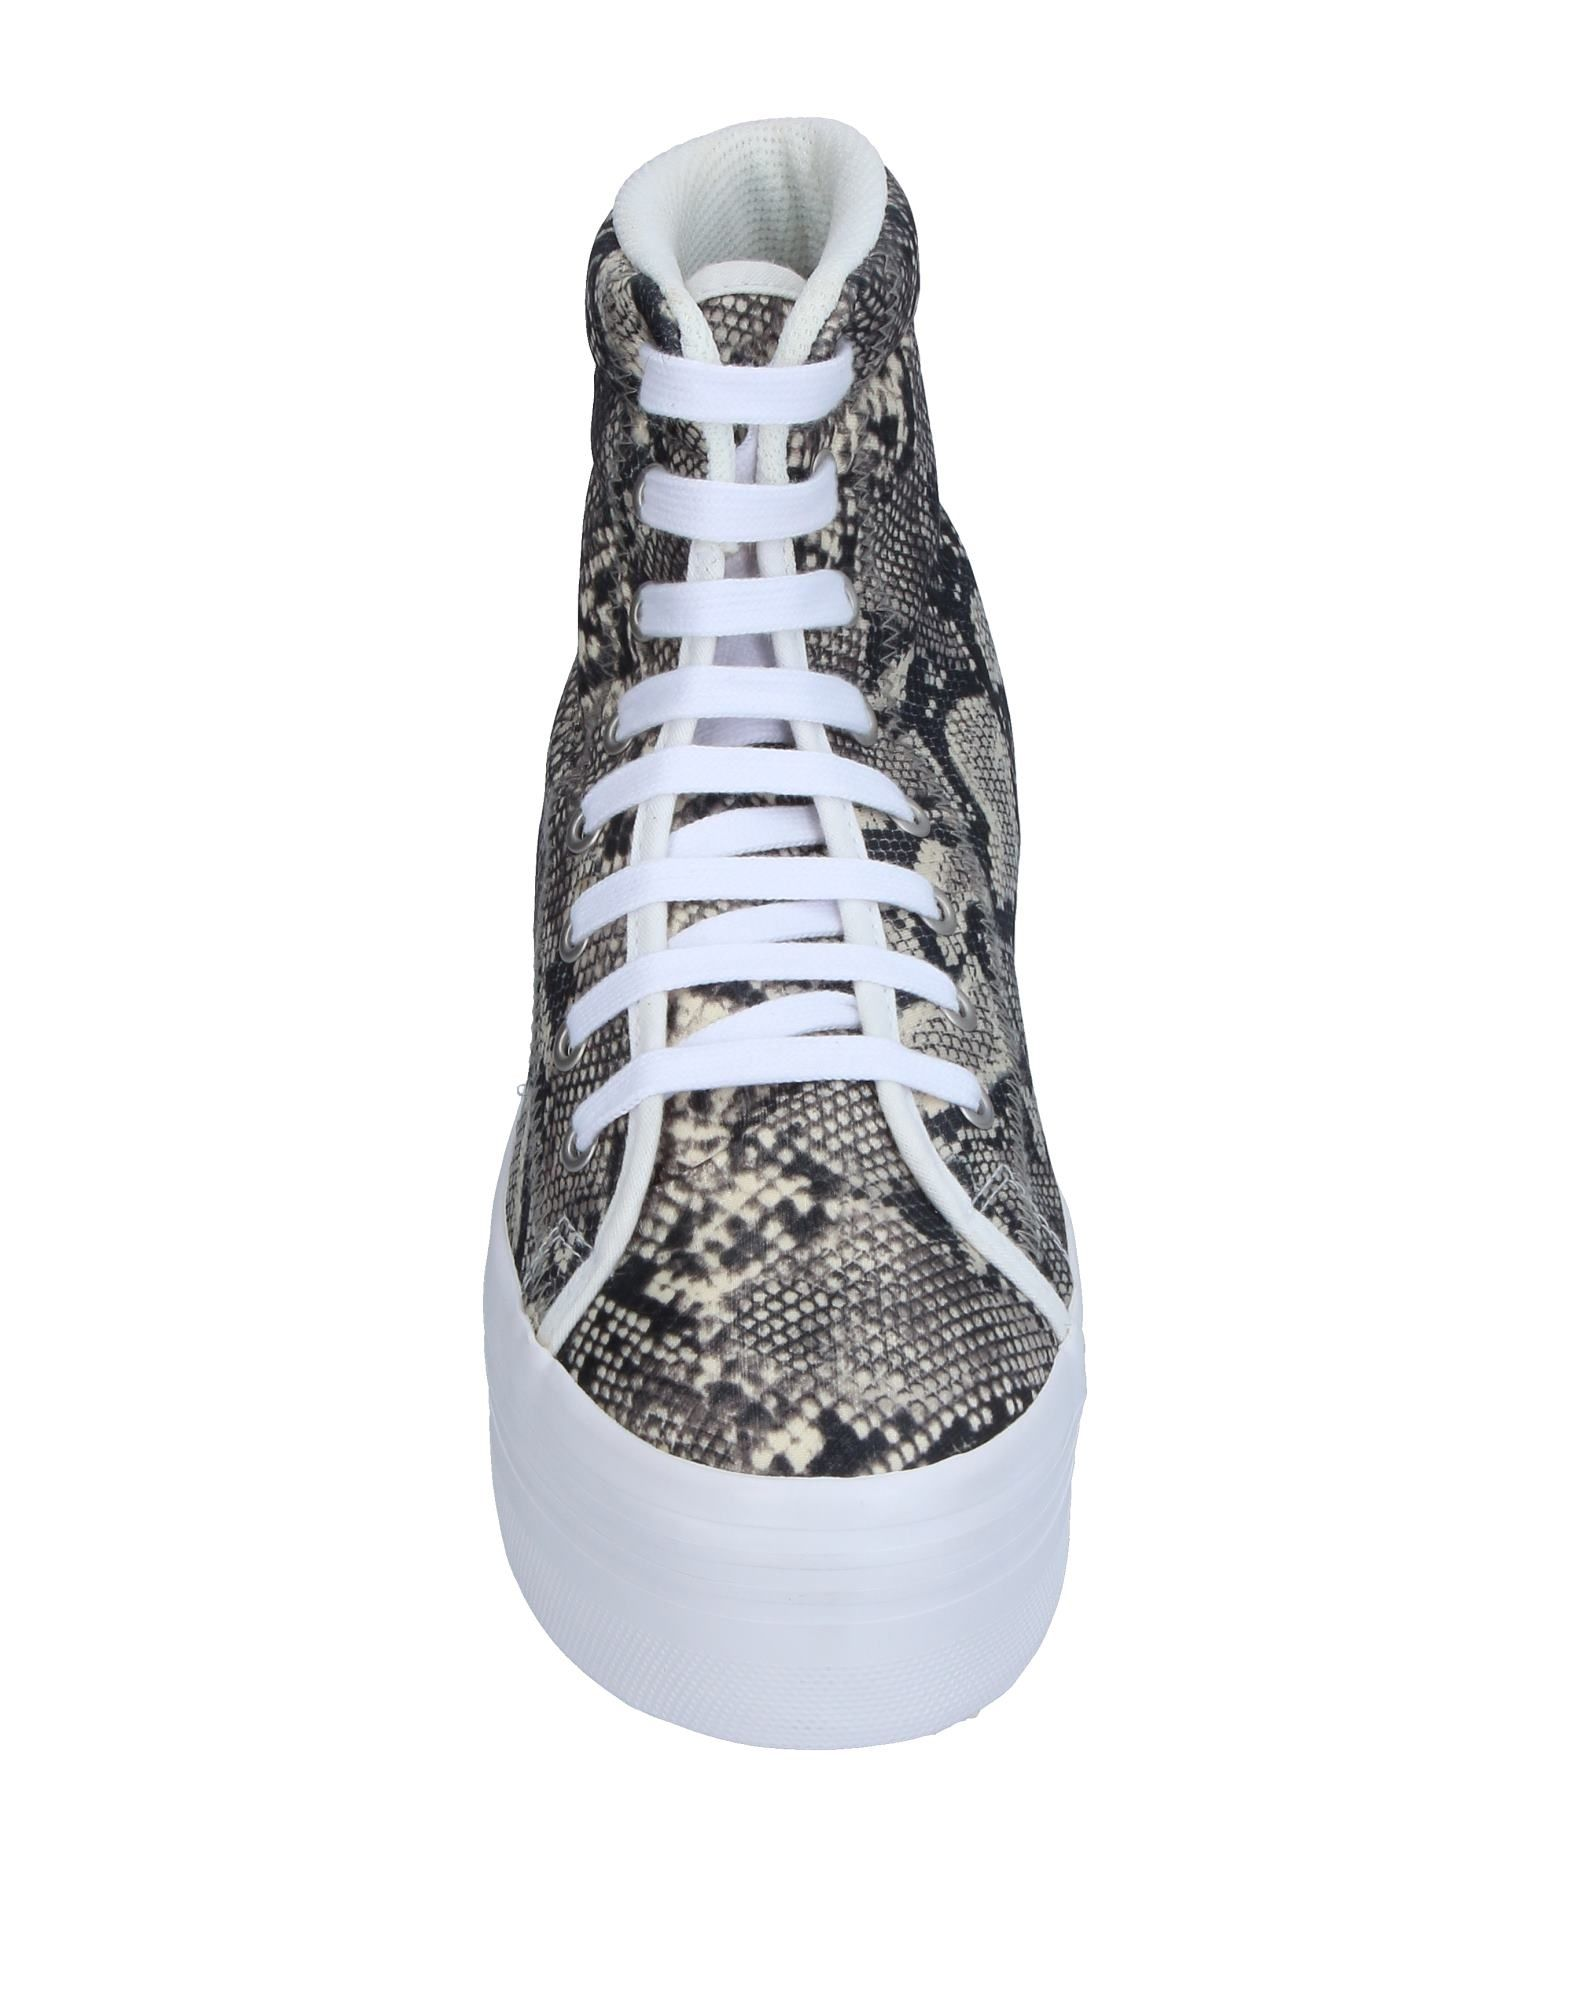 Sneakers Jc Play By Jeffrey Campbell Femme - Sneakers Jc Play By Jeffrey Campbell sur